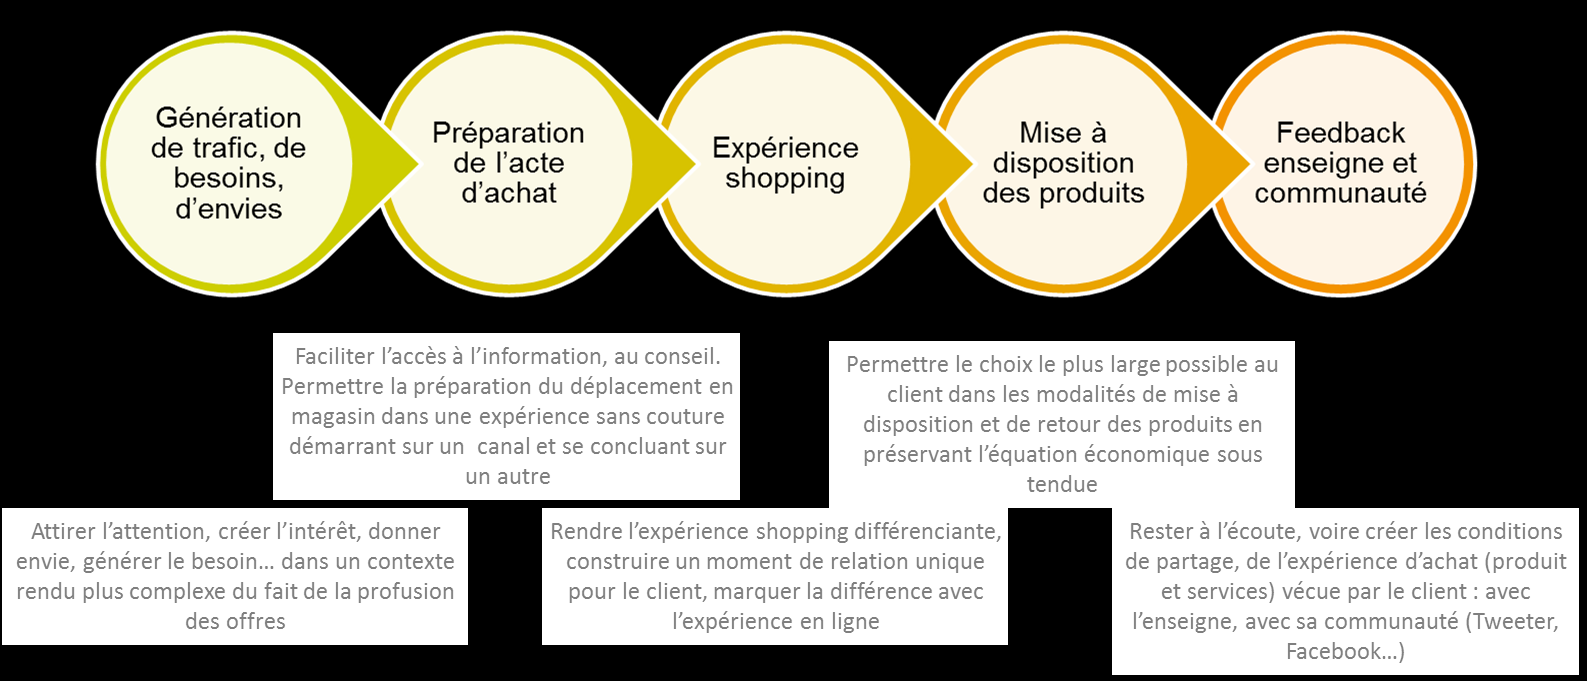 I - Que retenir des innovations digitales qui se multiplient dans la distribution traditionnelle?